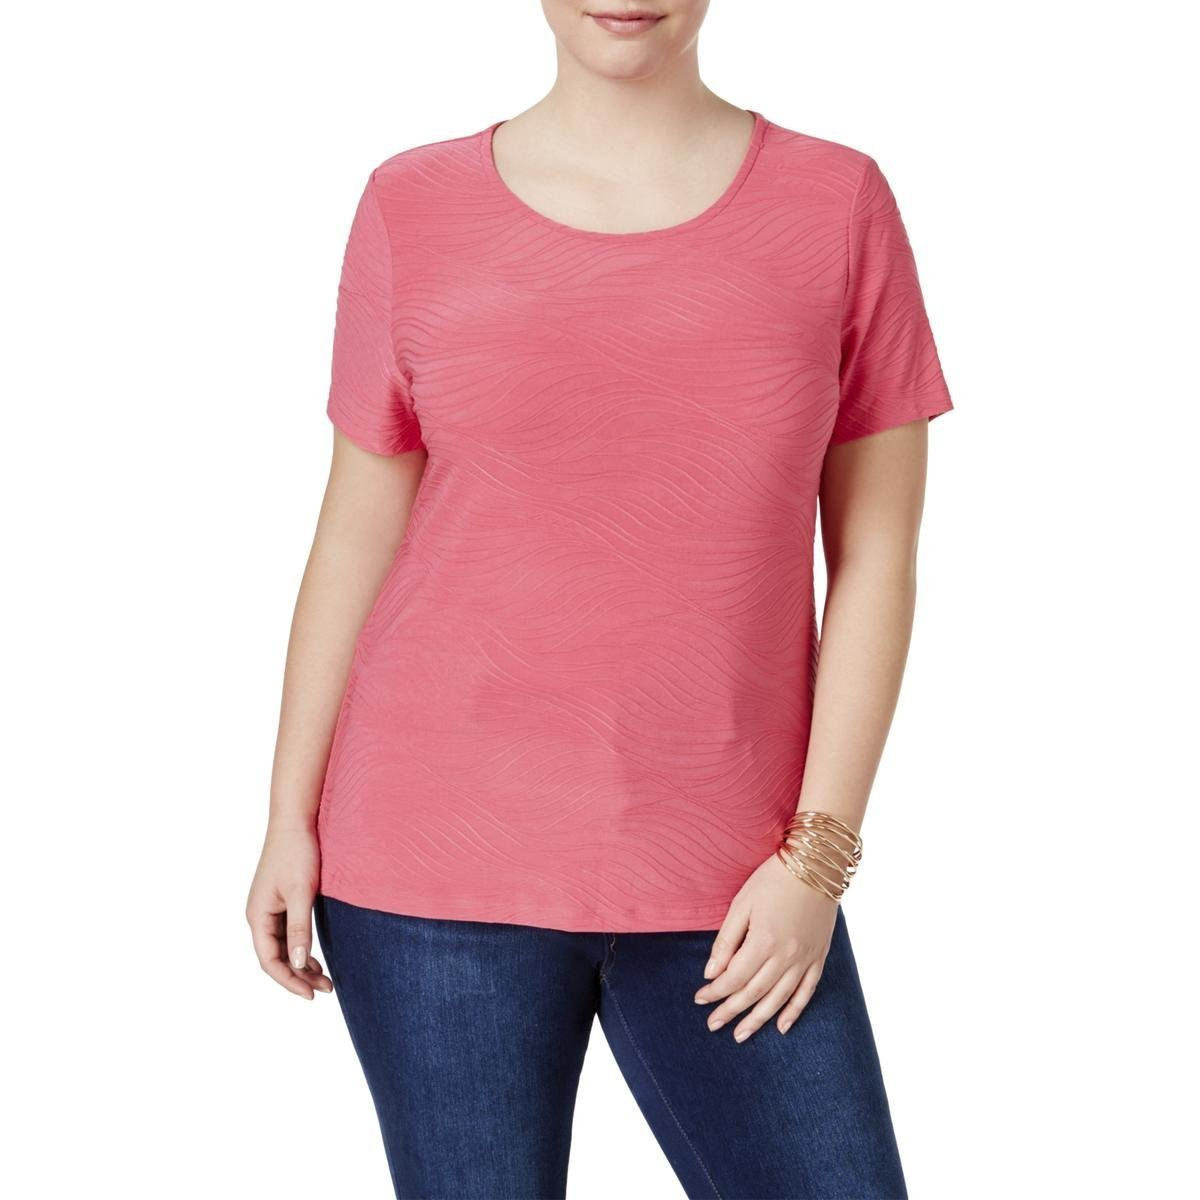 JM Collection Womens Plus Jacquard Textured Casual Top Pink 0X